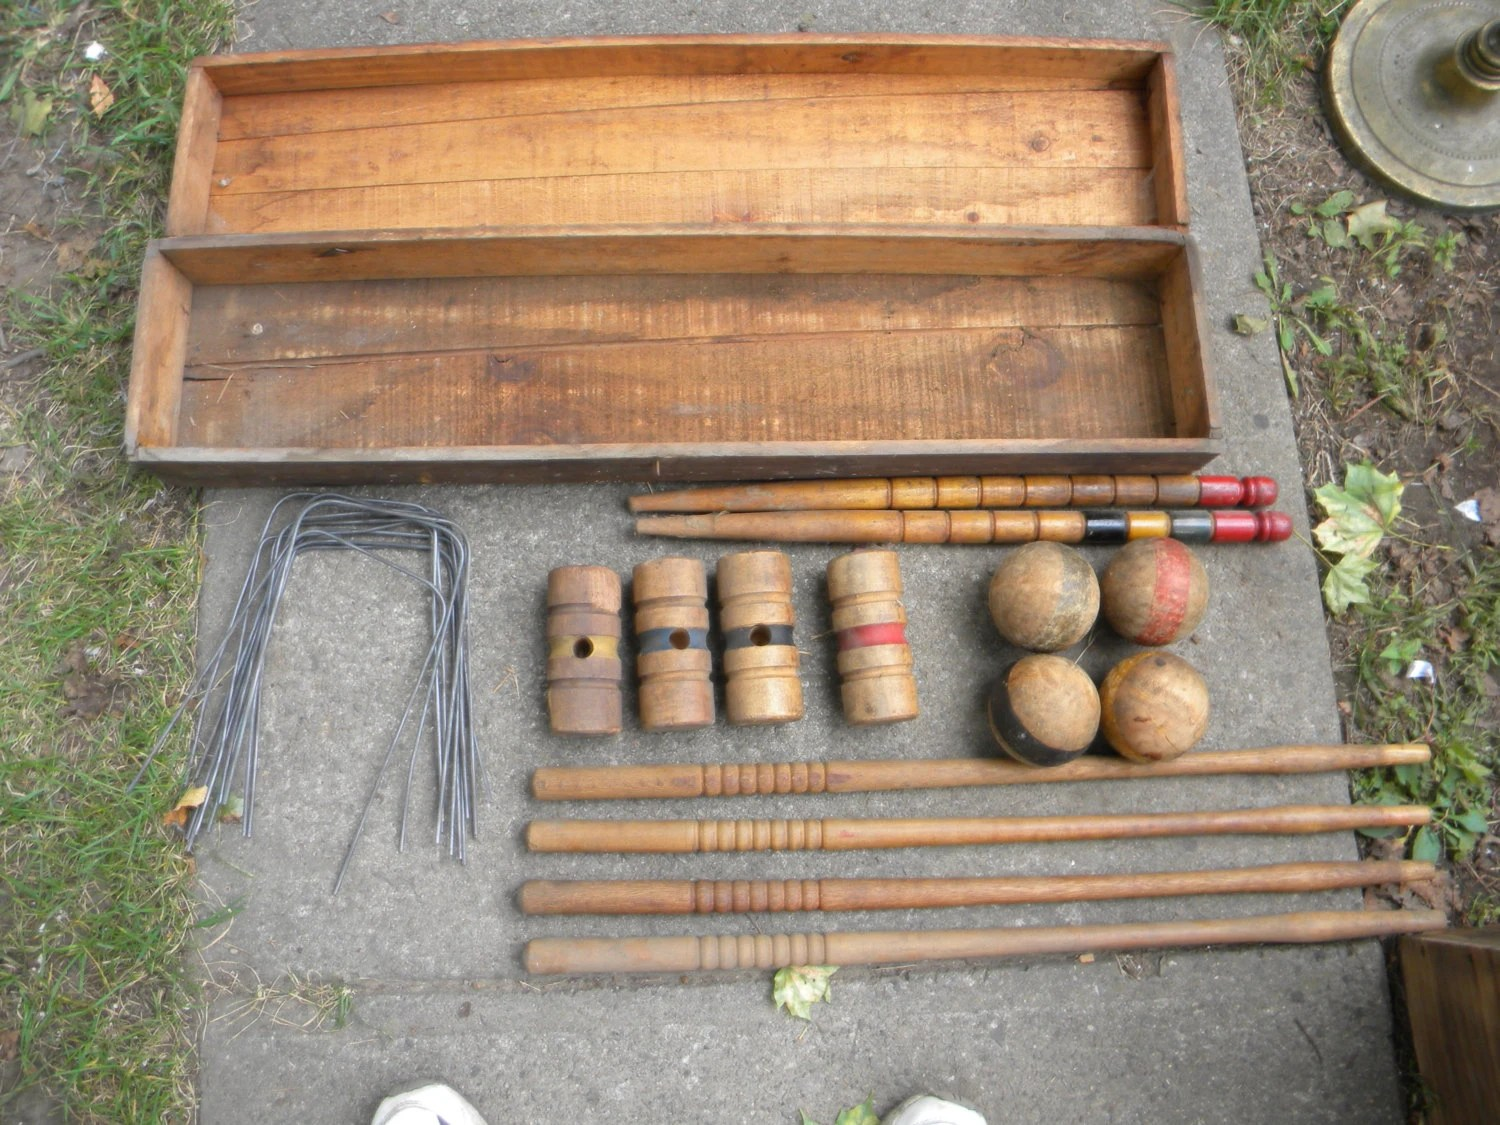 ANTIQUE Vintage 1920s Or So CROQUET SET Lawn Game In By